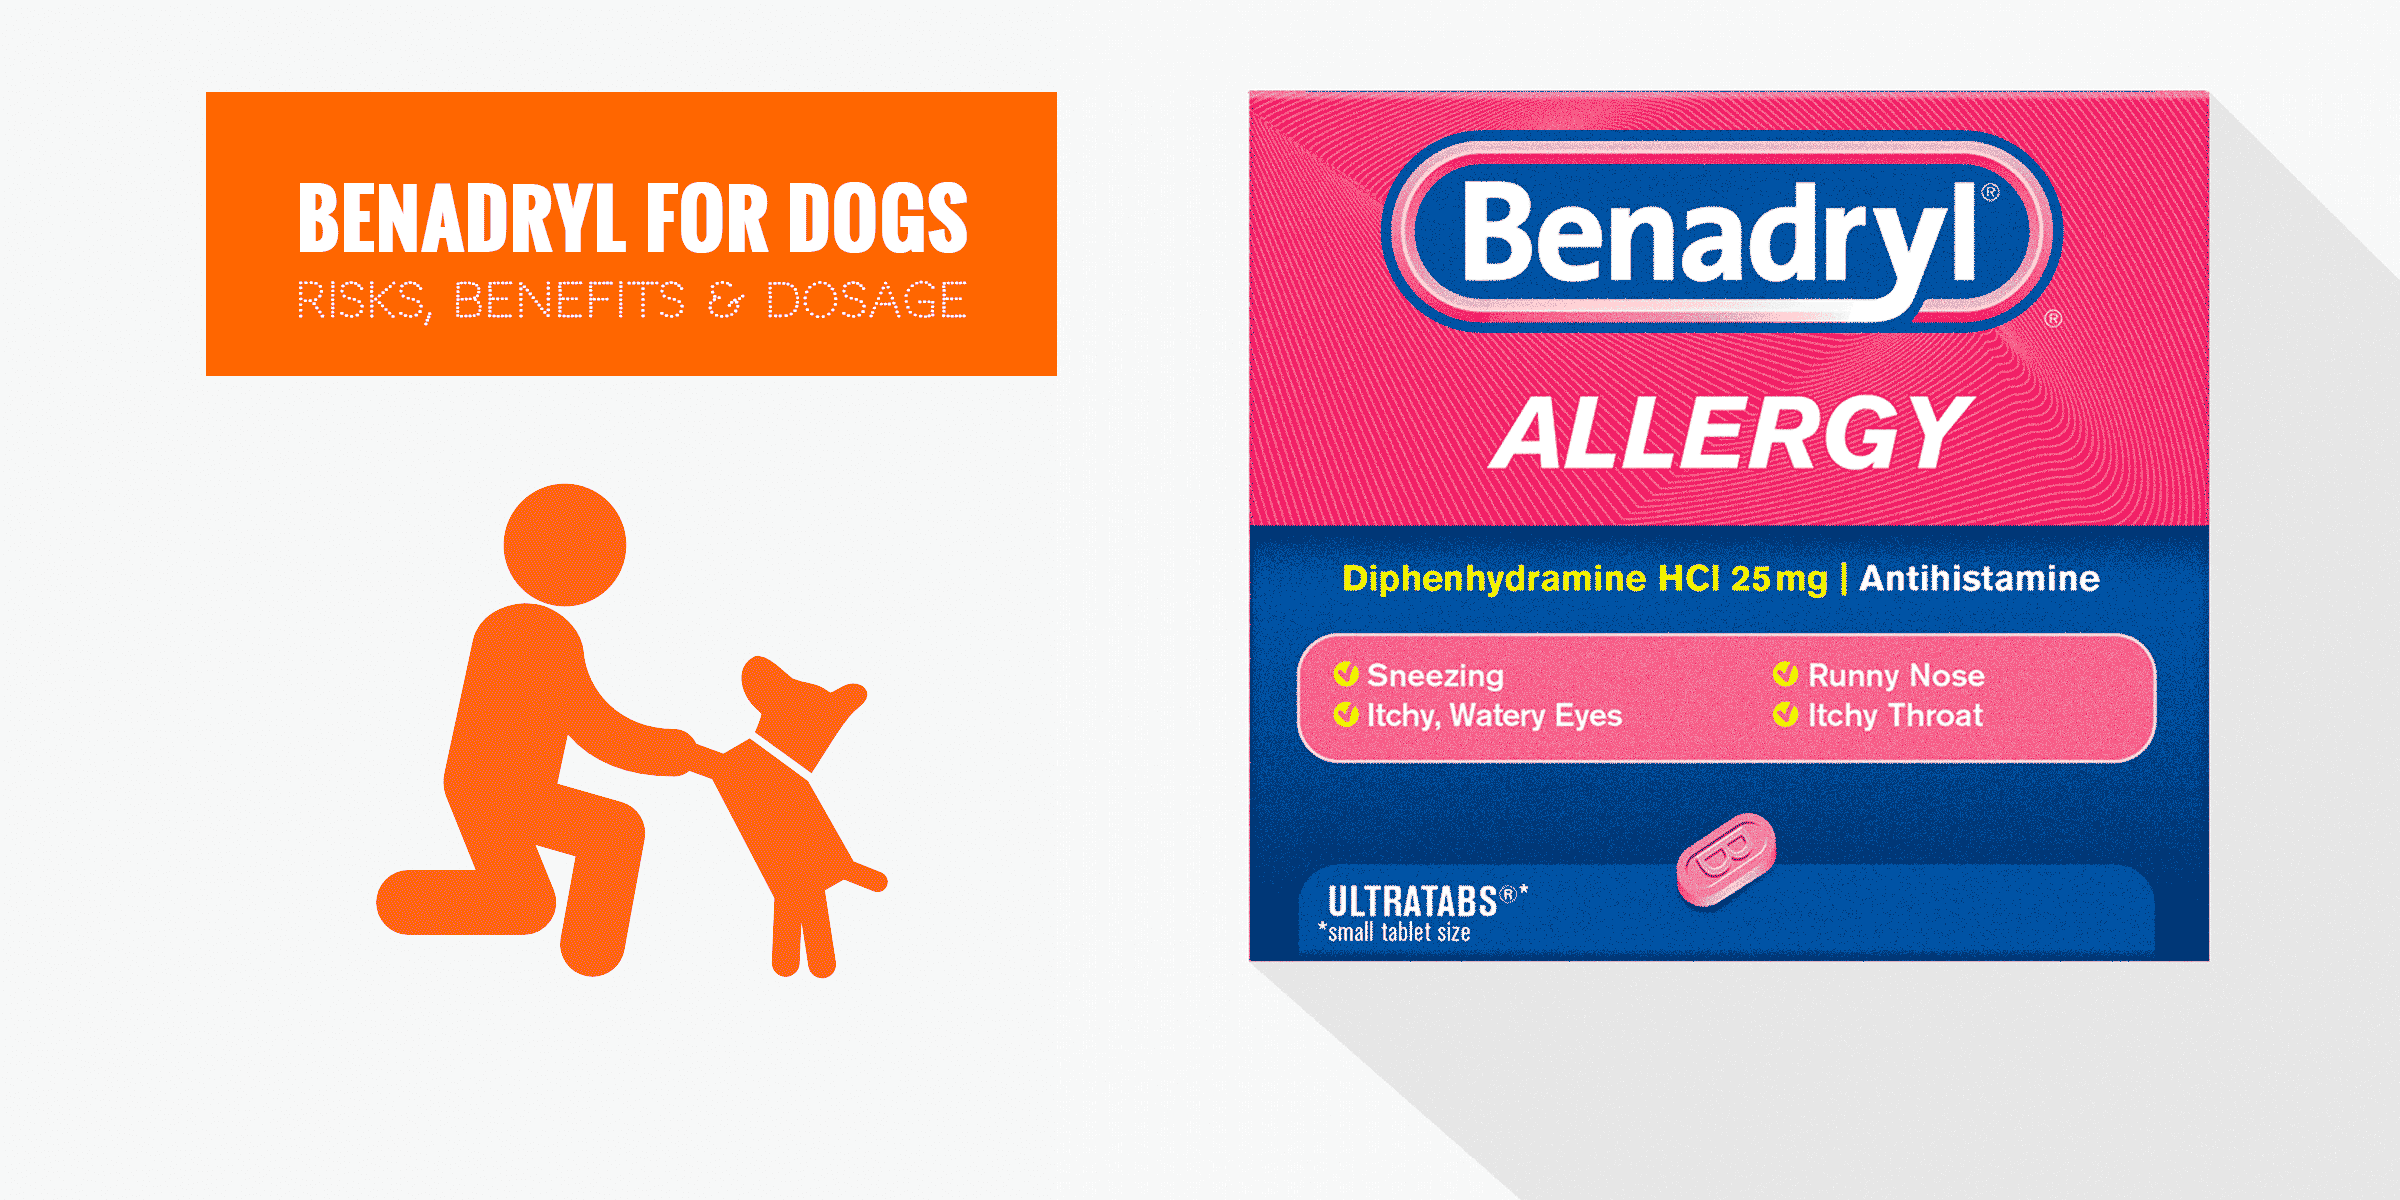 Benadryl For Dogs — Usage, Safety, Dosage, Side Effects